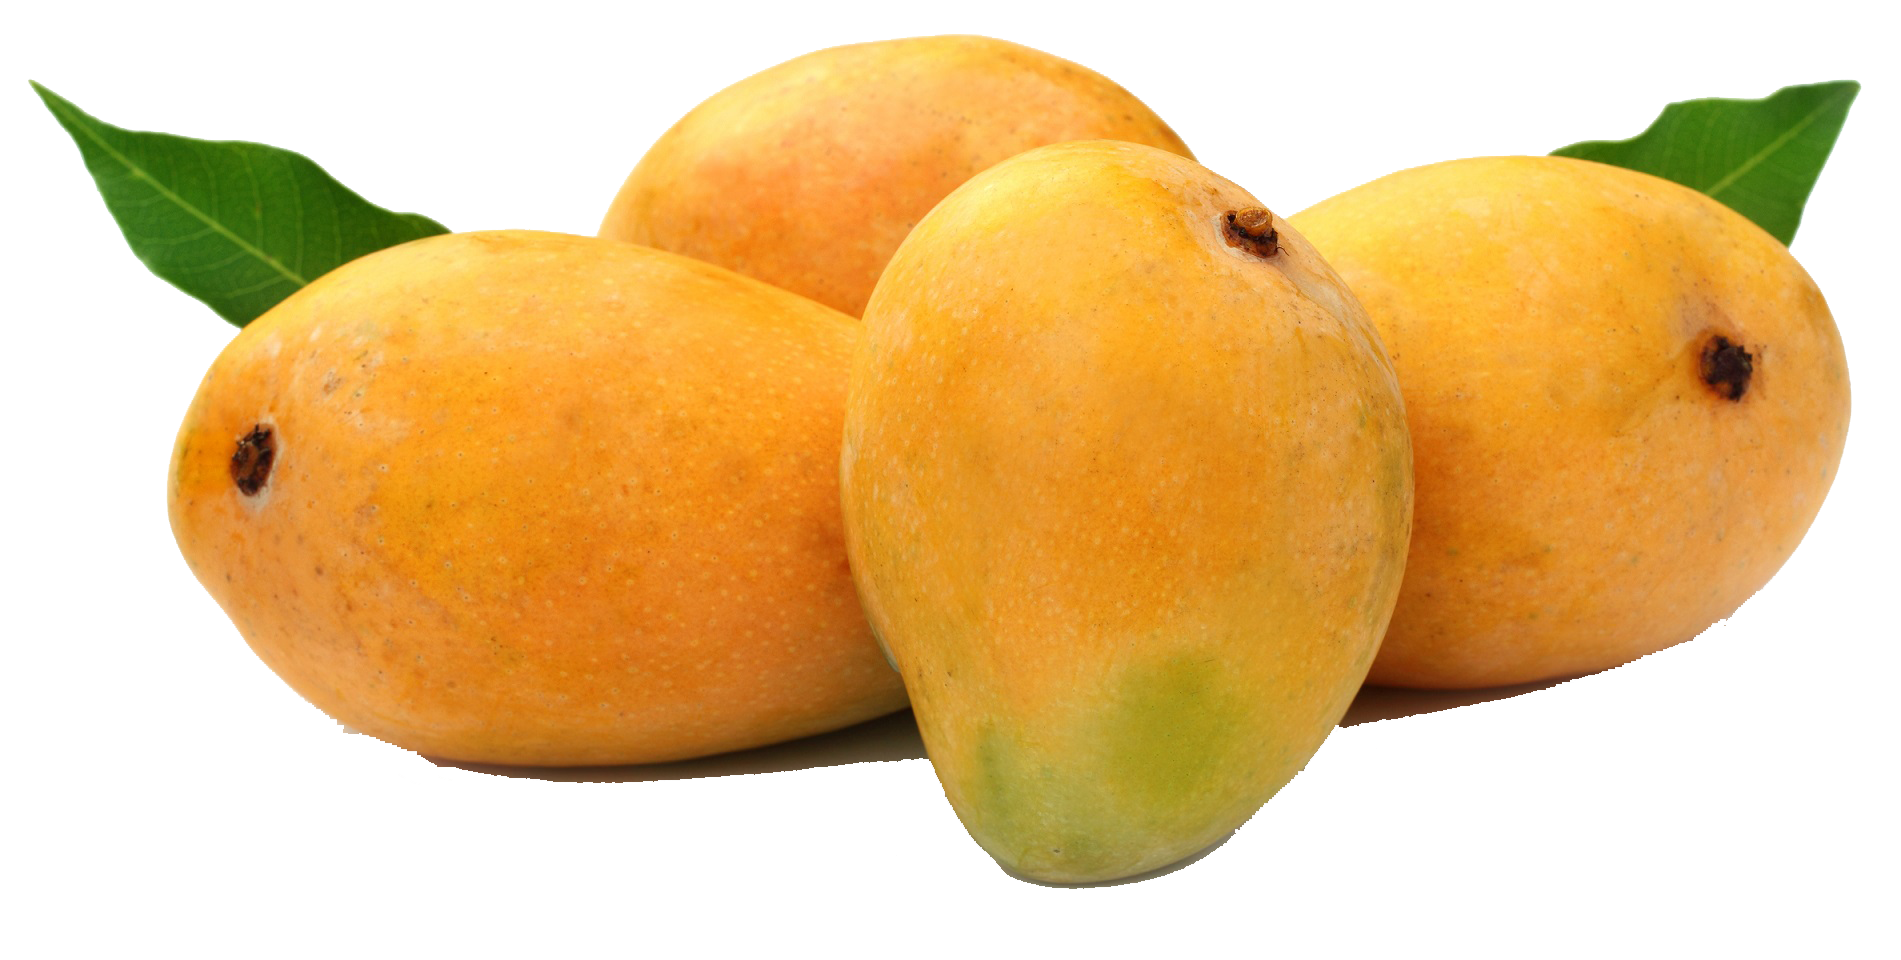 Png Of Mango - Mango PNG HD Images #8232 - PNG Images - PNGio